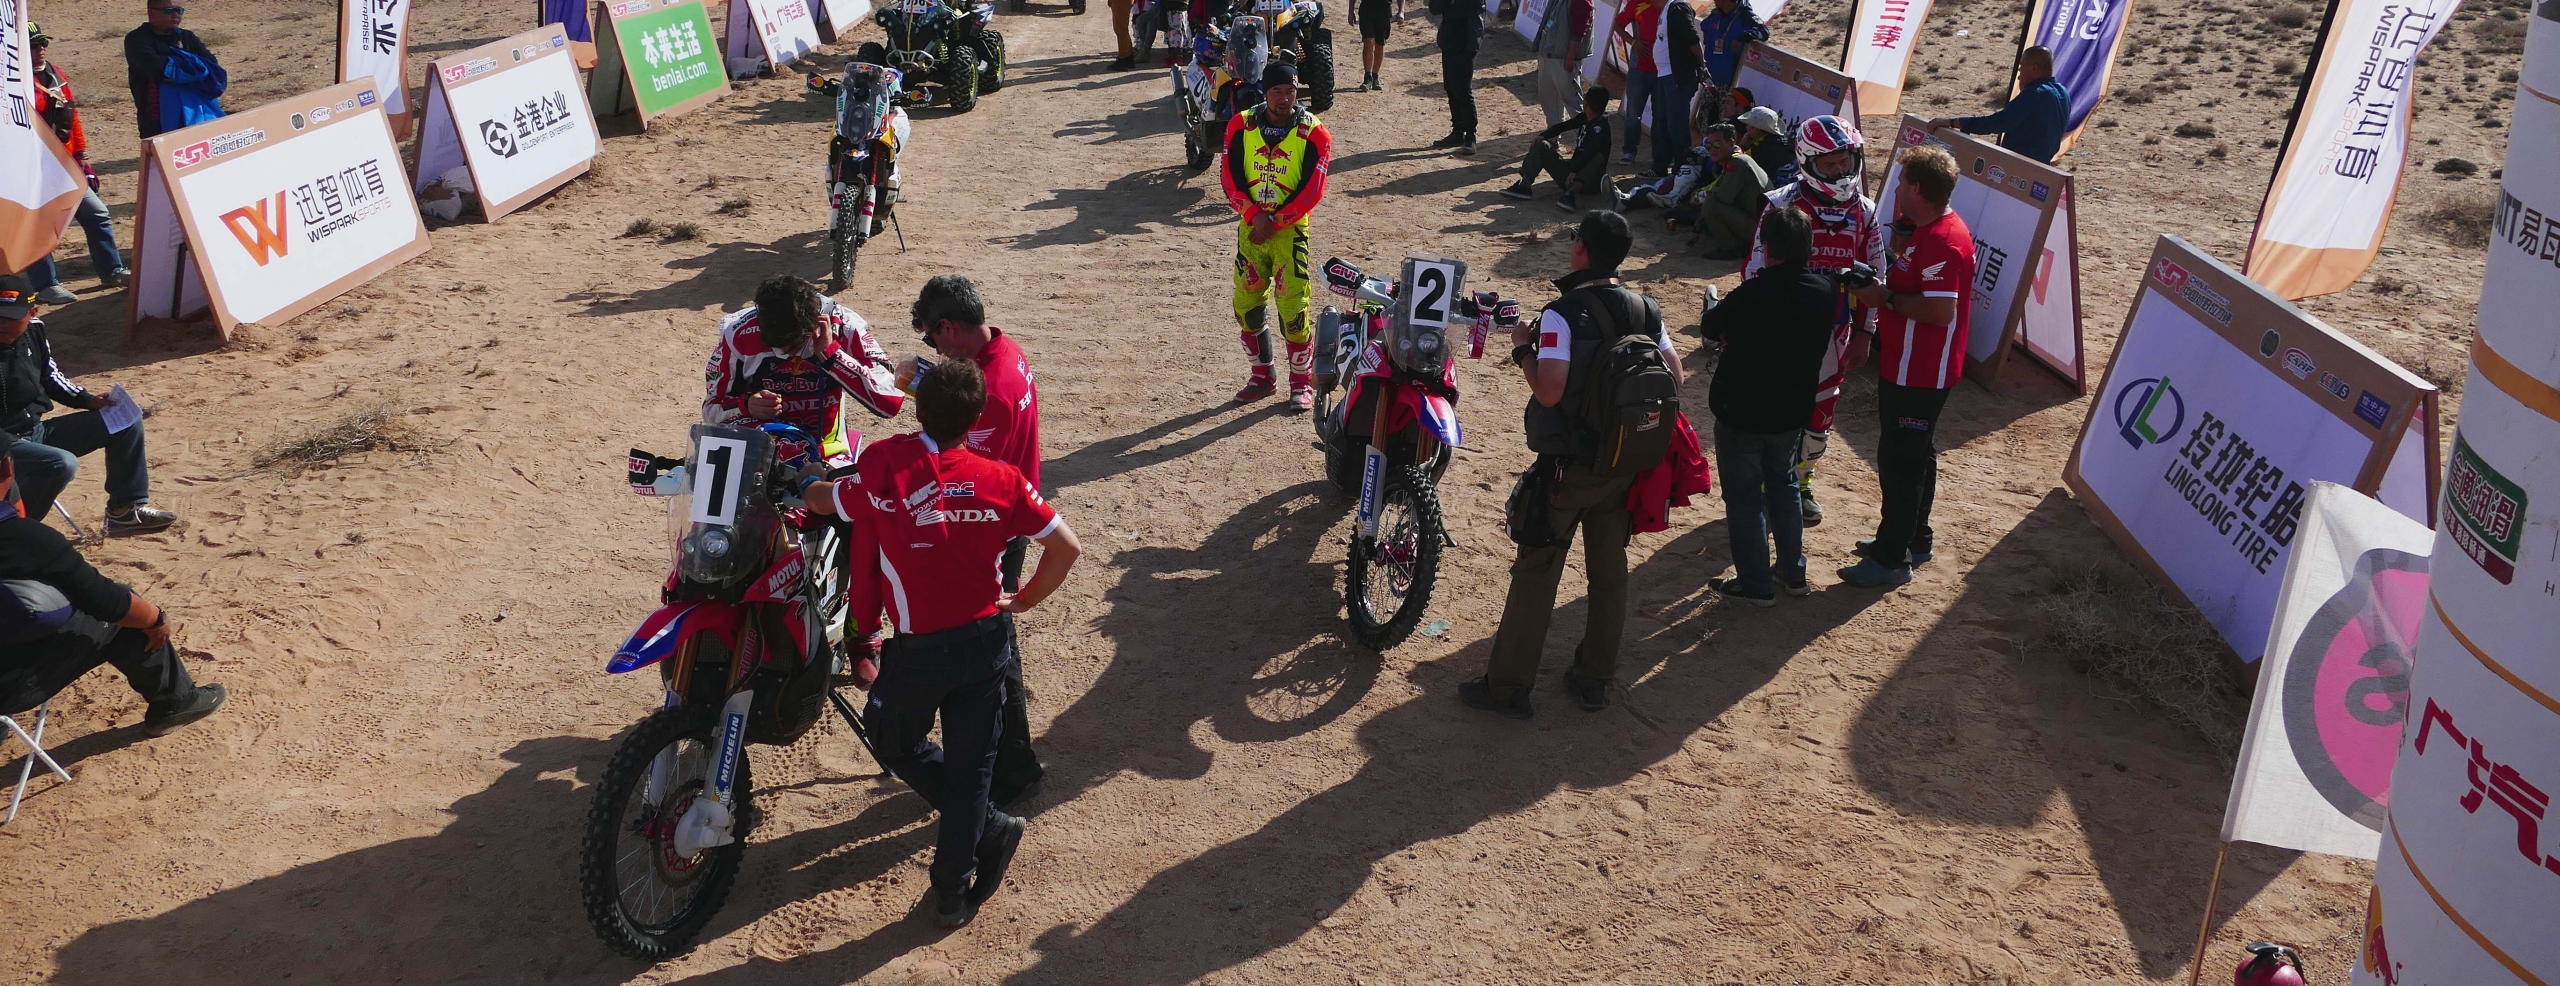 Fifth stage of the China Grand Rally cancelled